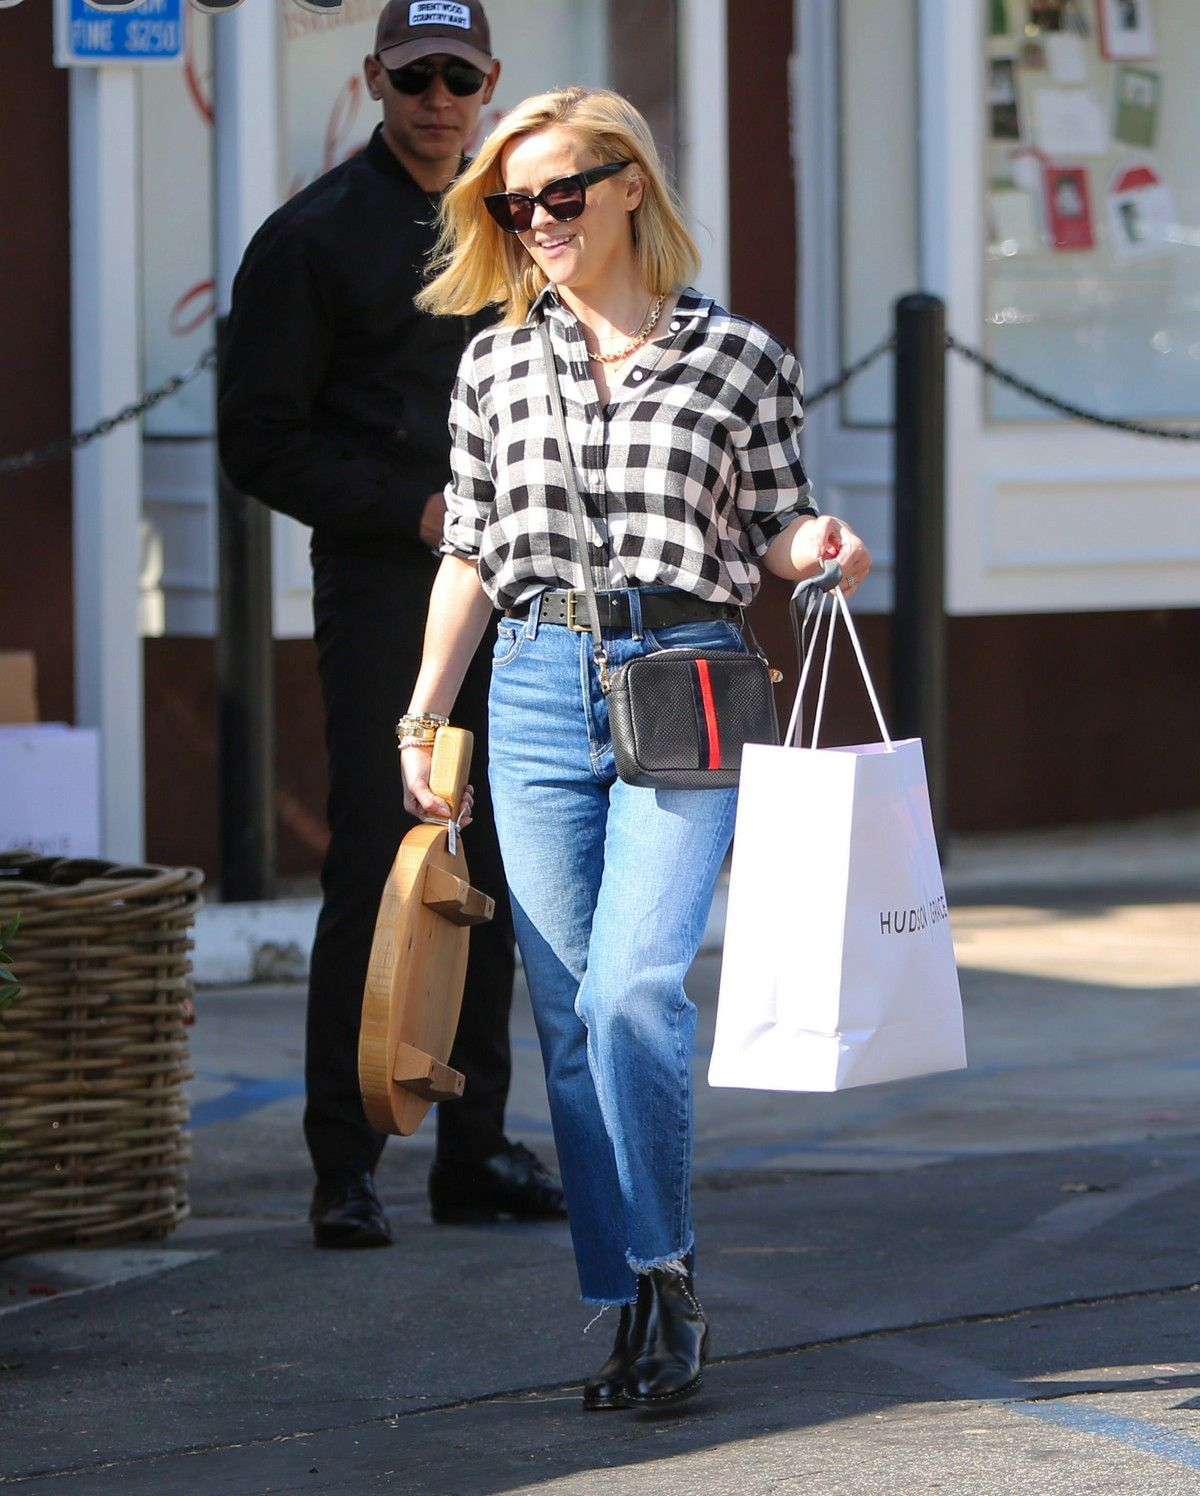 Early Christmas Shopping 2020 Reese Witherspoon in checked shirt with denim early Christmas